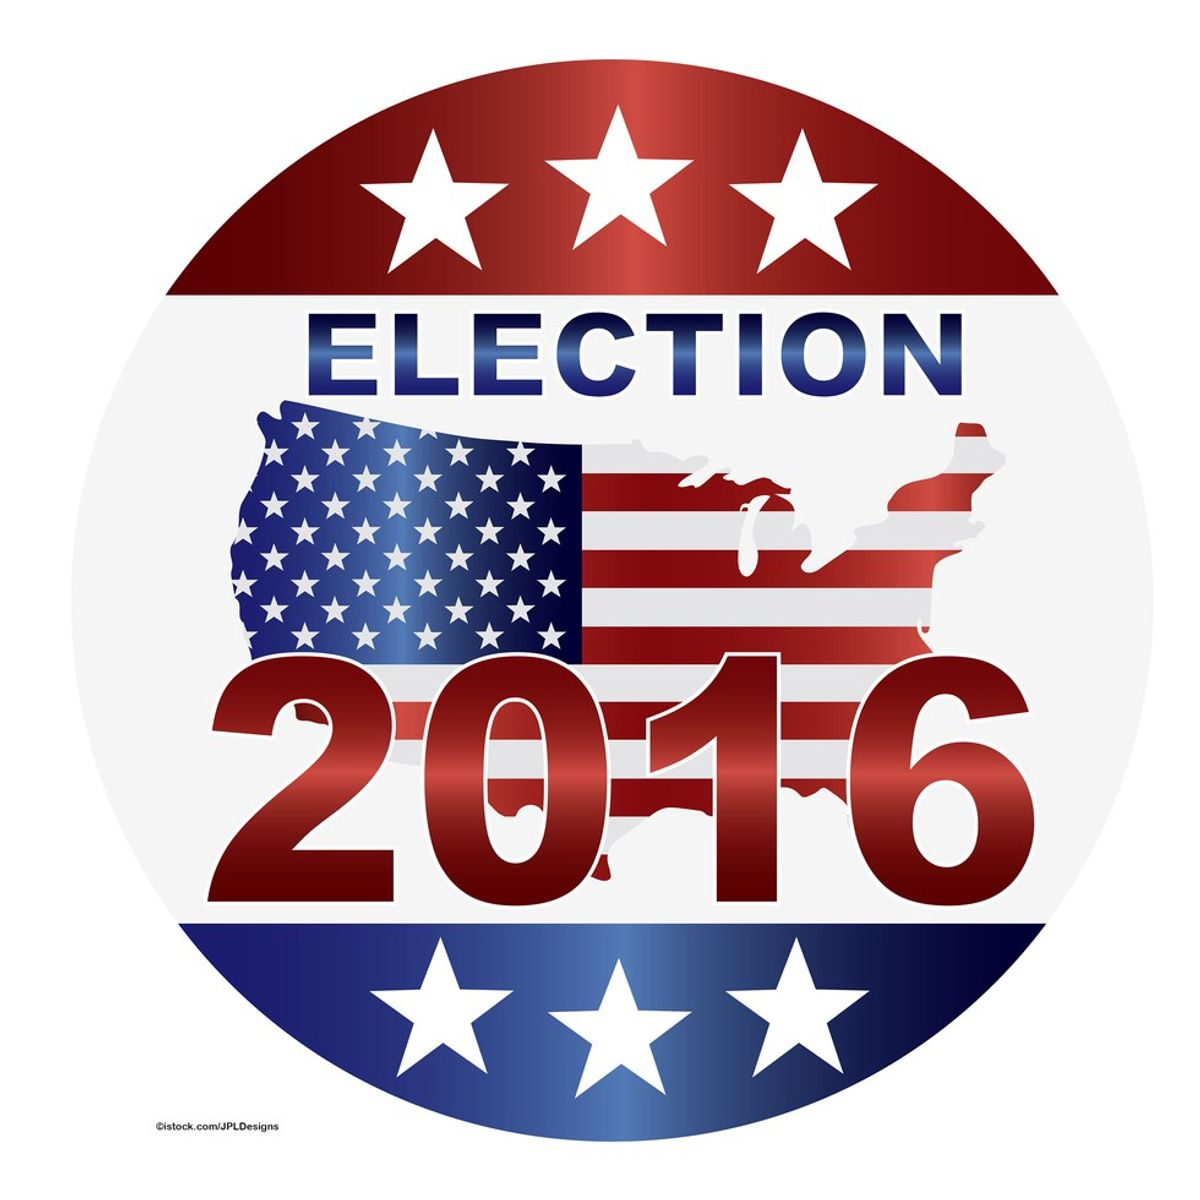 Where Do We Go From Here: How This Election Will Truly Change The US